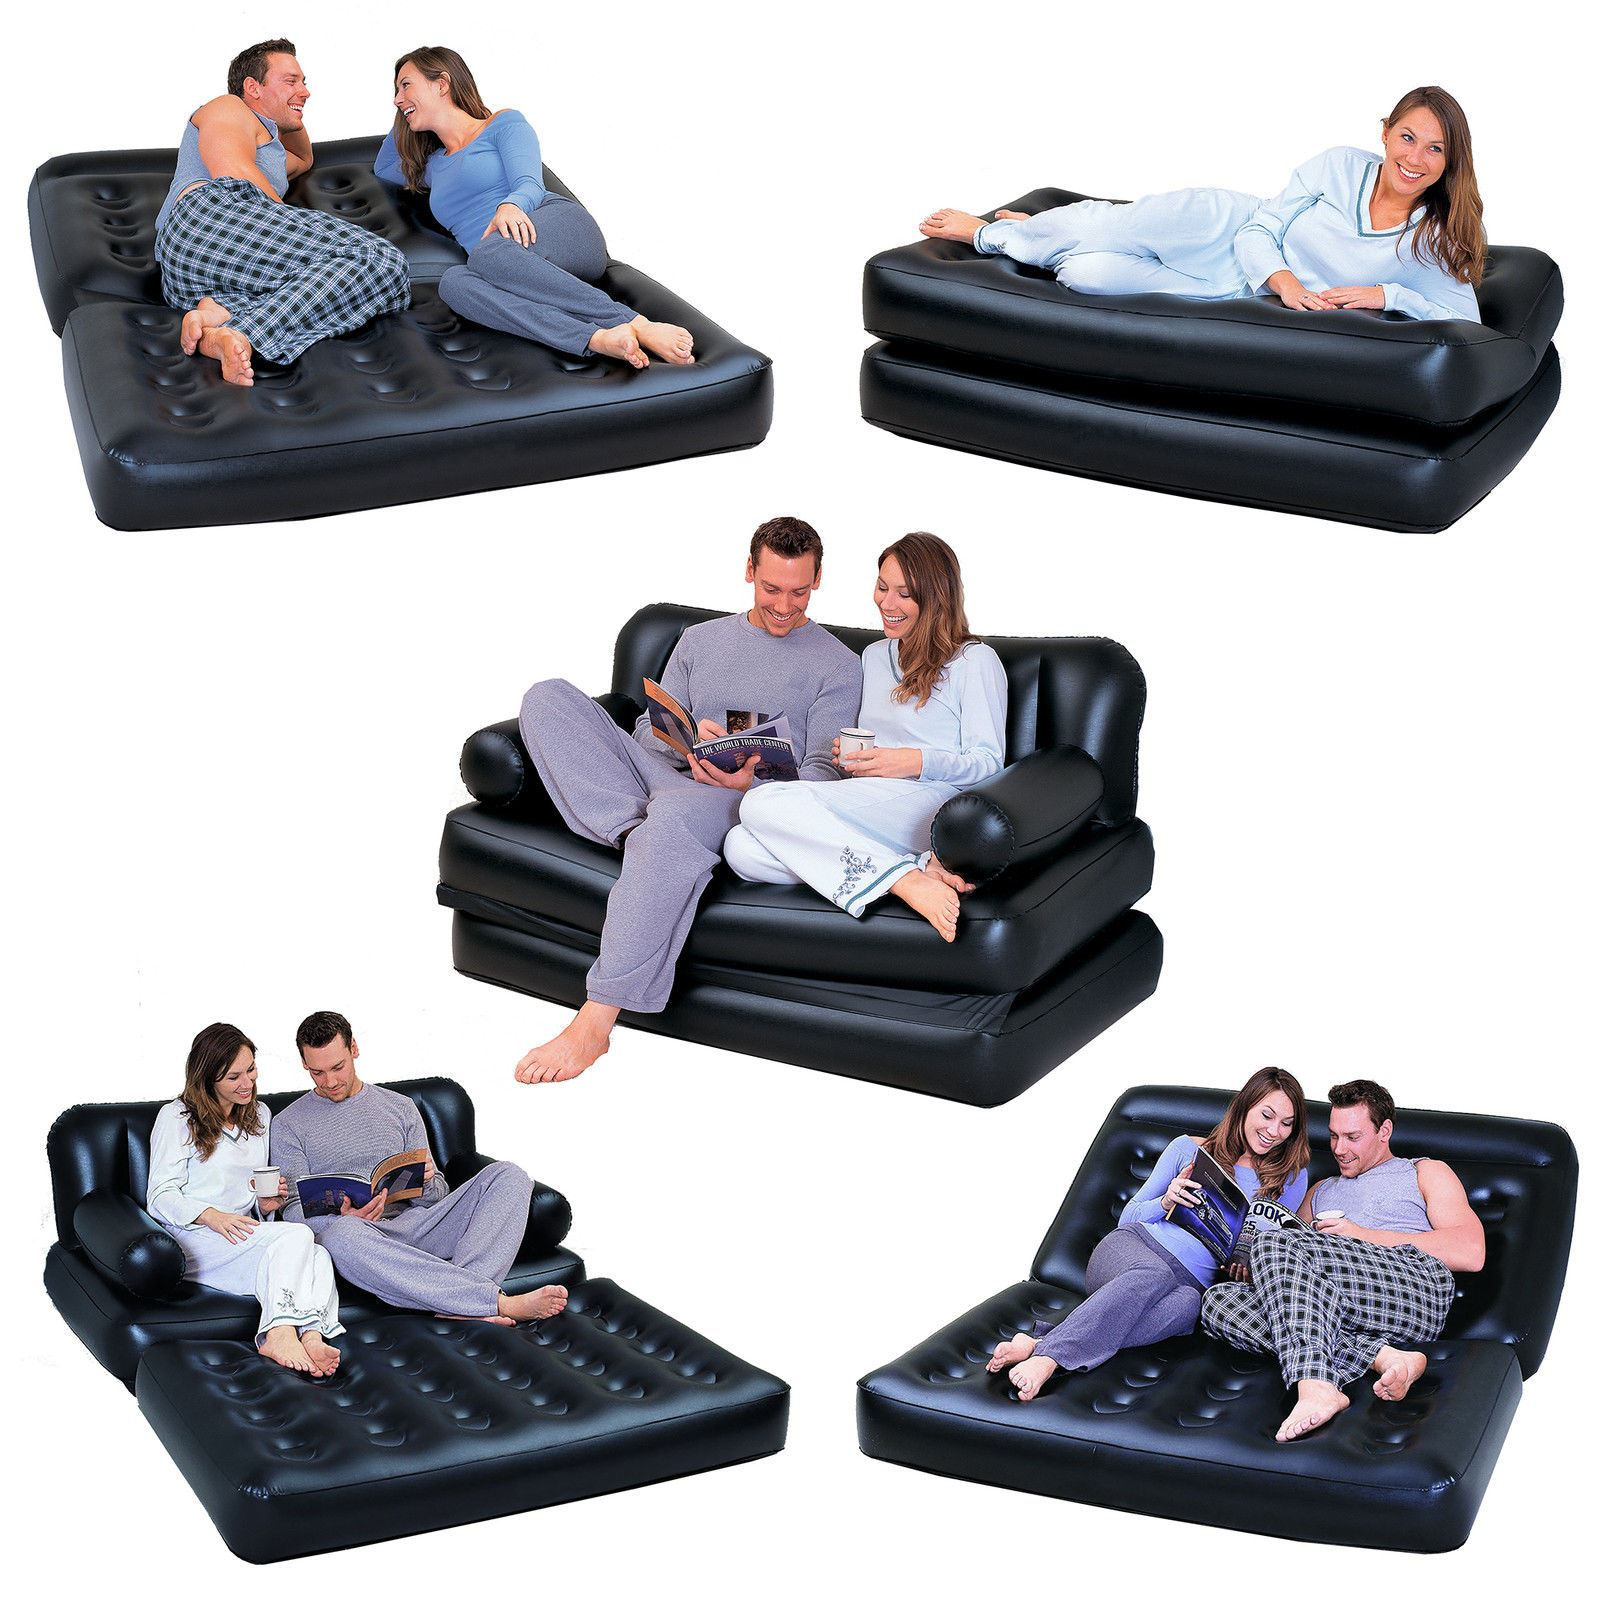 New 5 In 1 Double Black Inflatable Air Sofa Chair Couch Lounger Bed Mattress Ebay